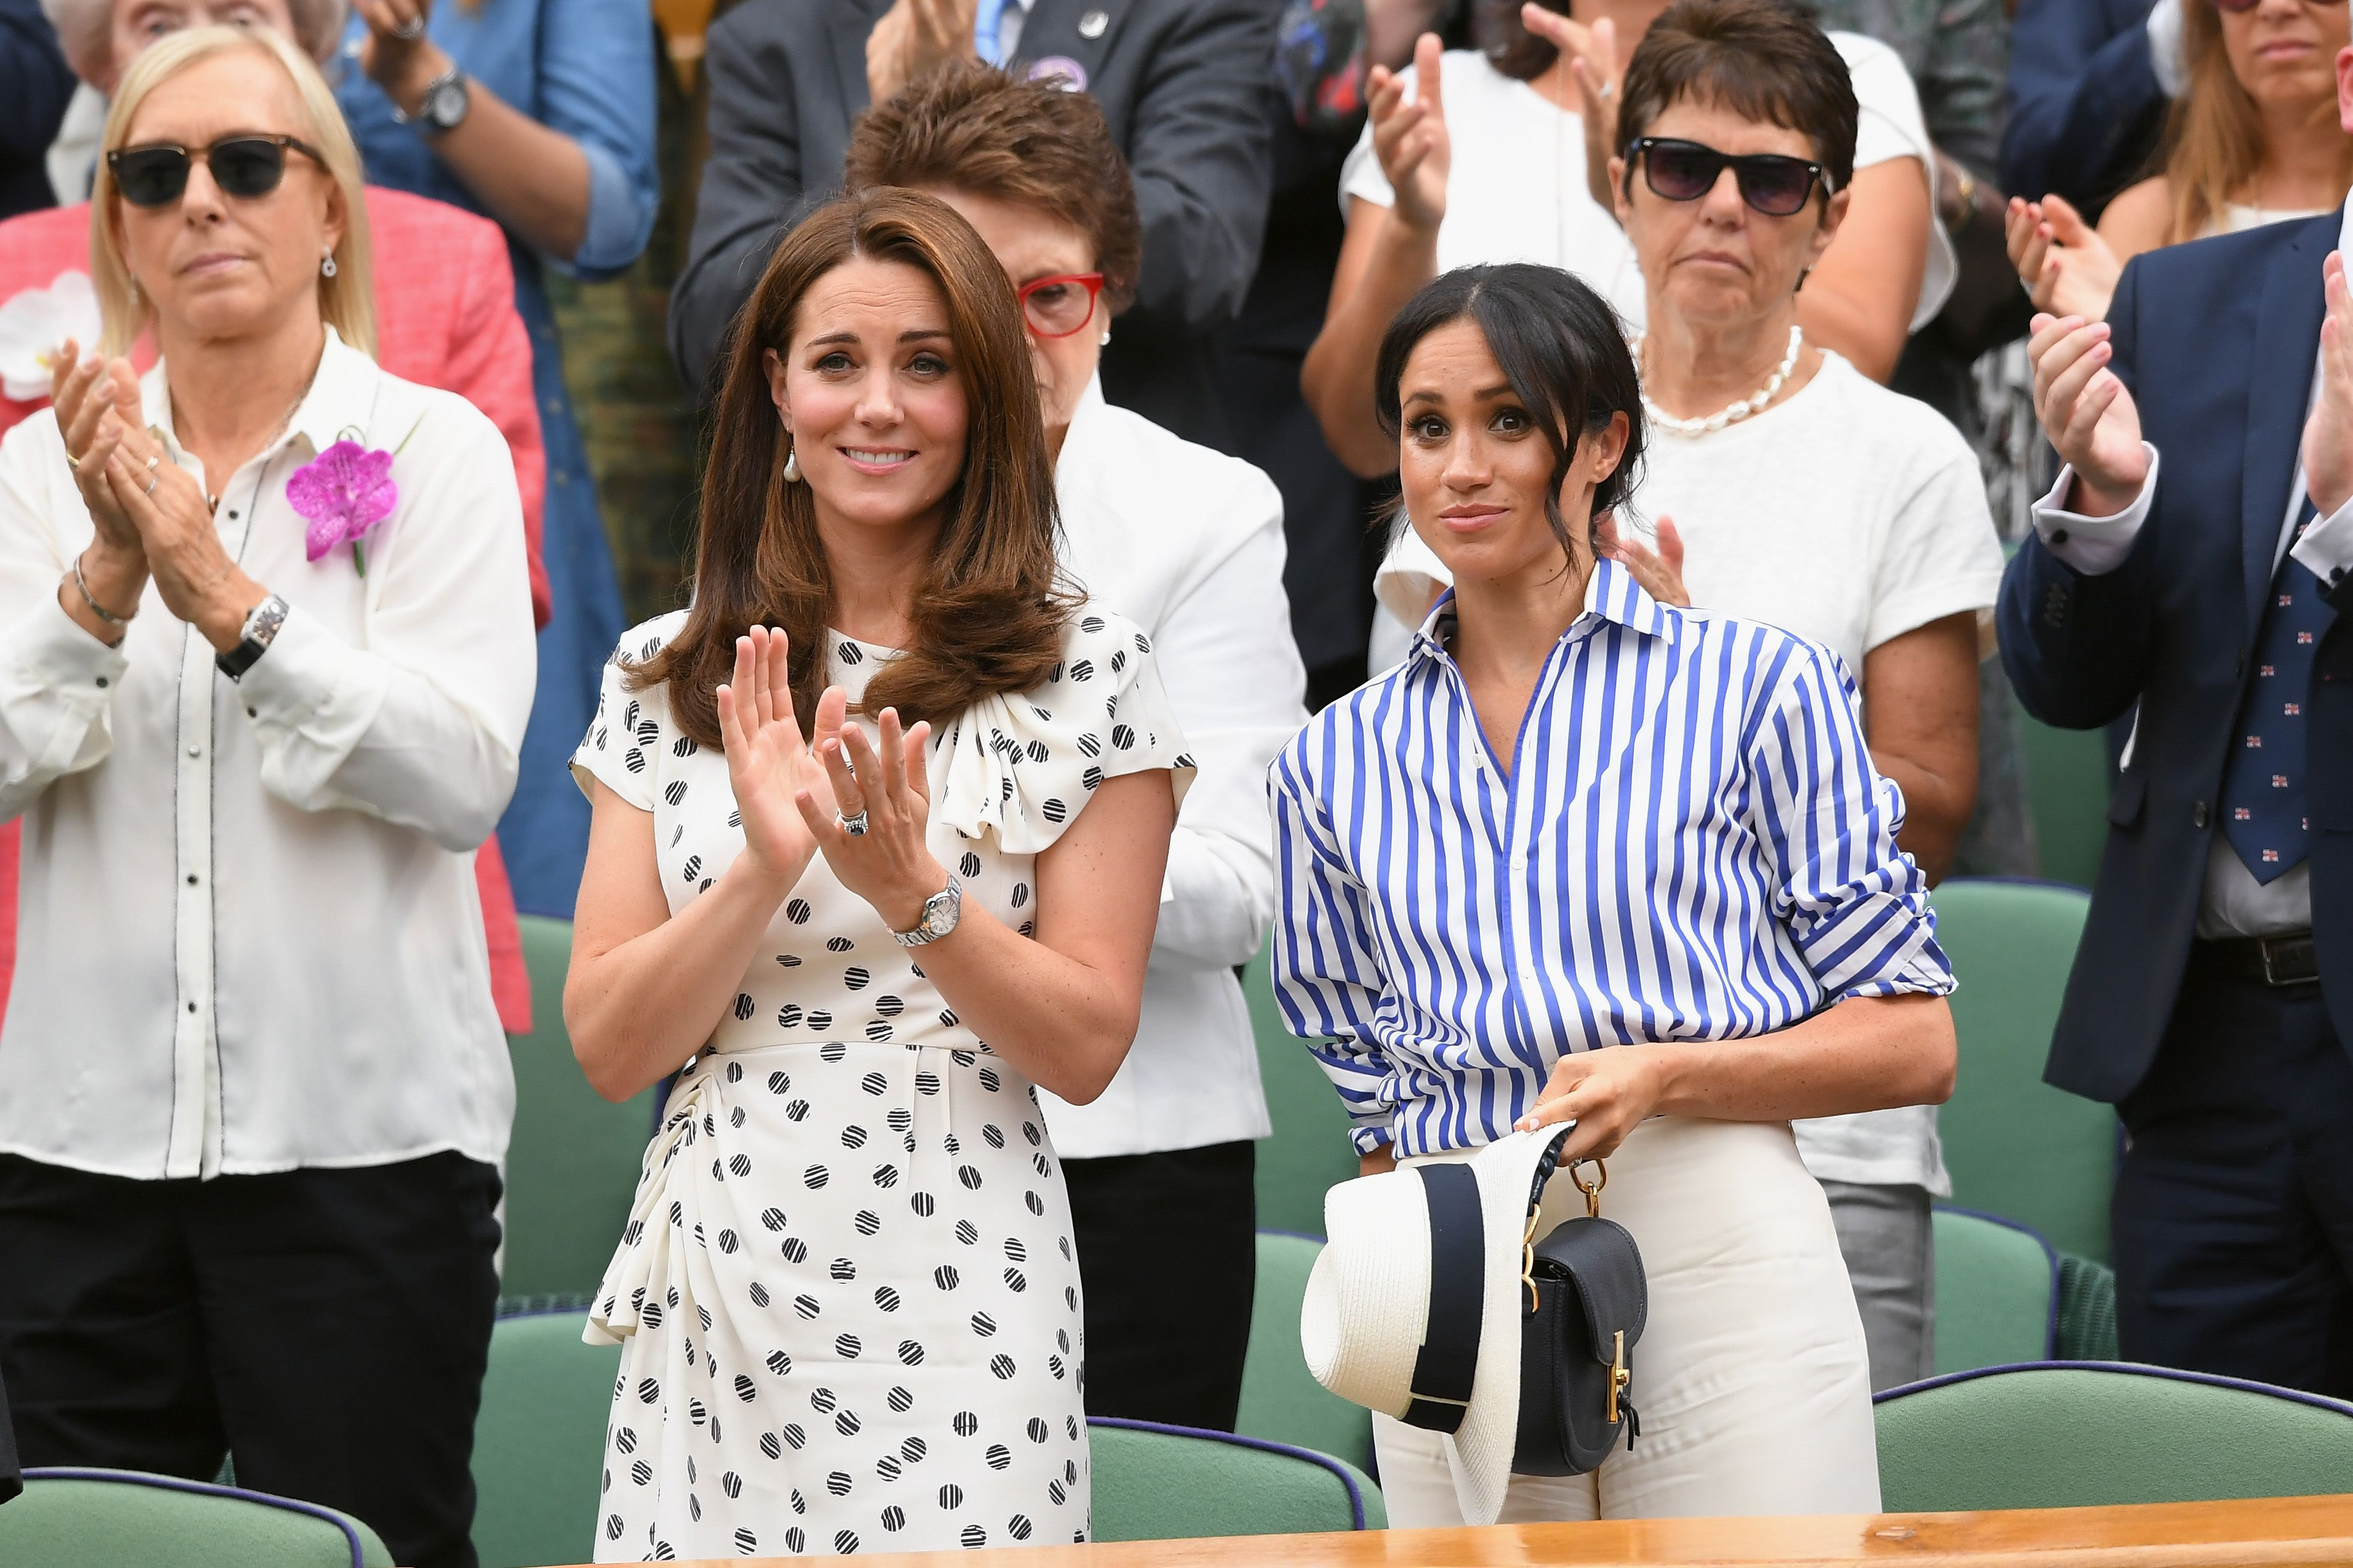 a62563c5eecc 40 Most Goofy Royal Photos That You've Never Seen Before